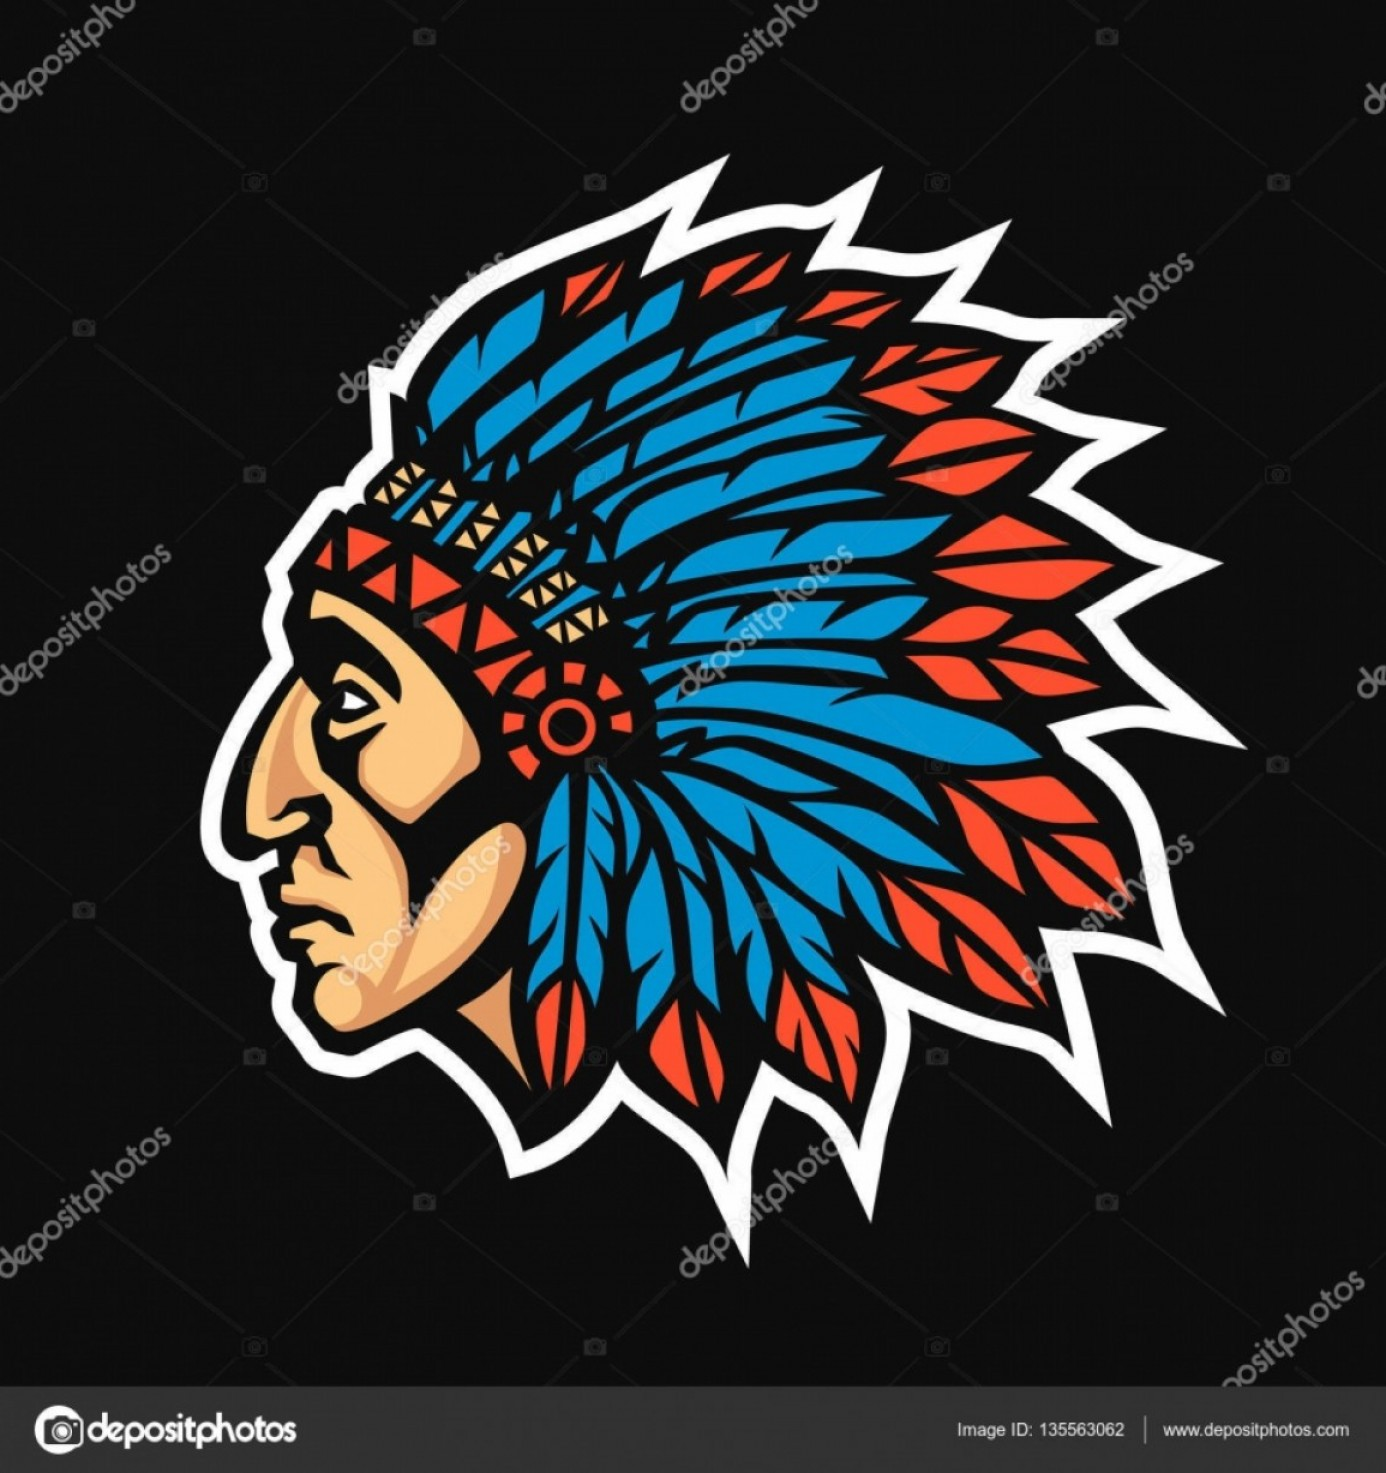 American Indian Chief Vector: Stock Illustration Native American Indian Chief Head